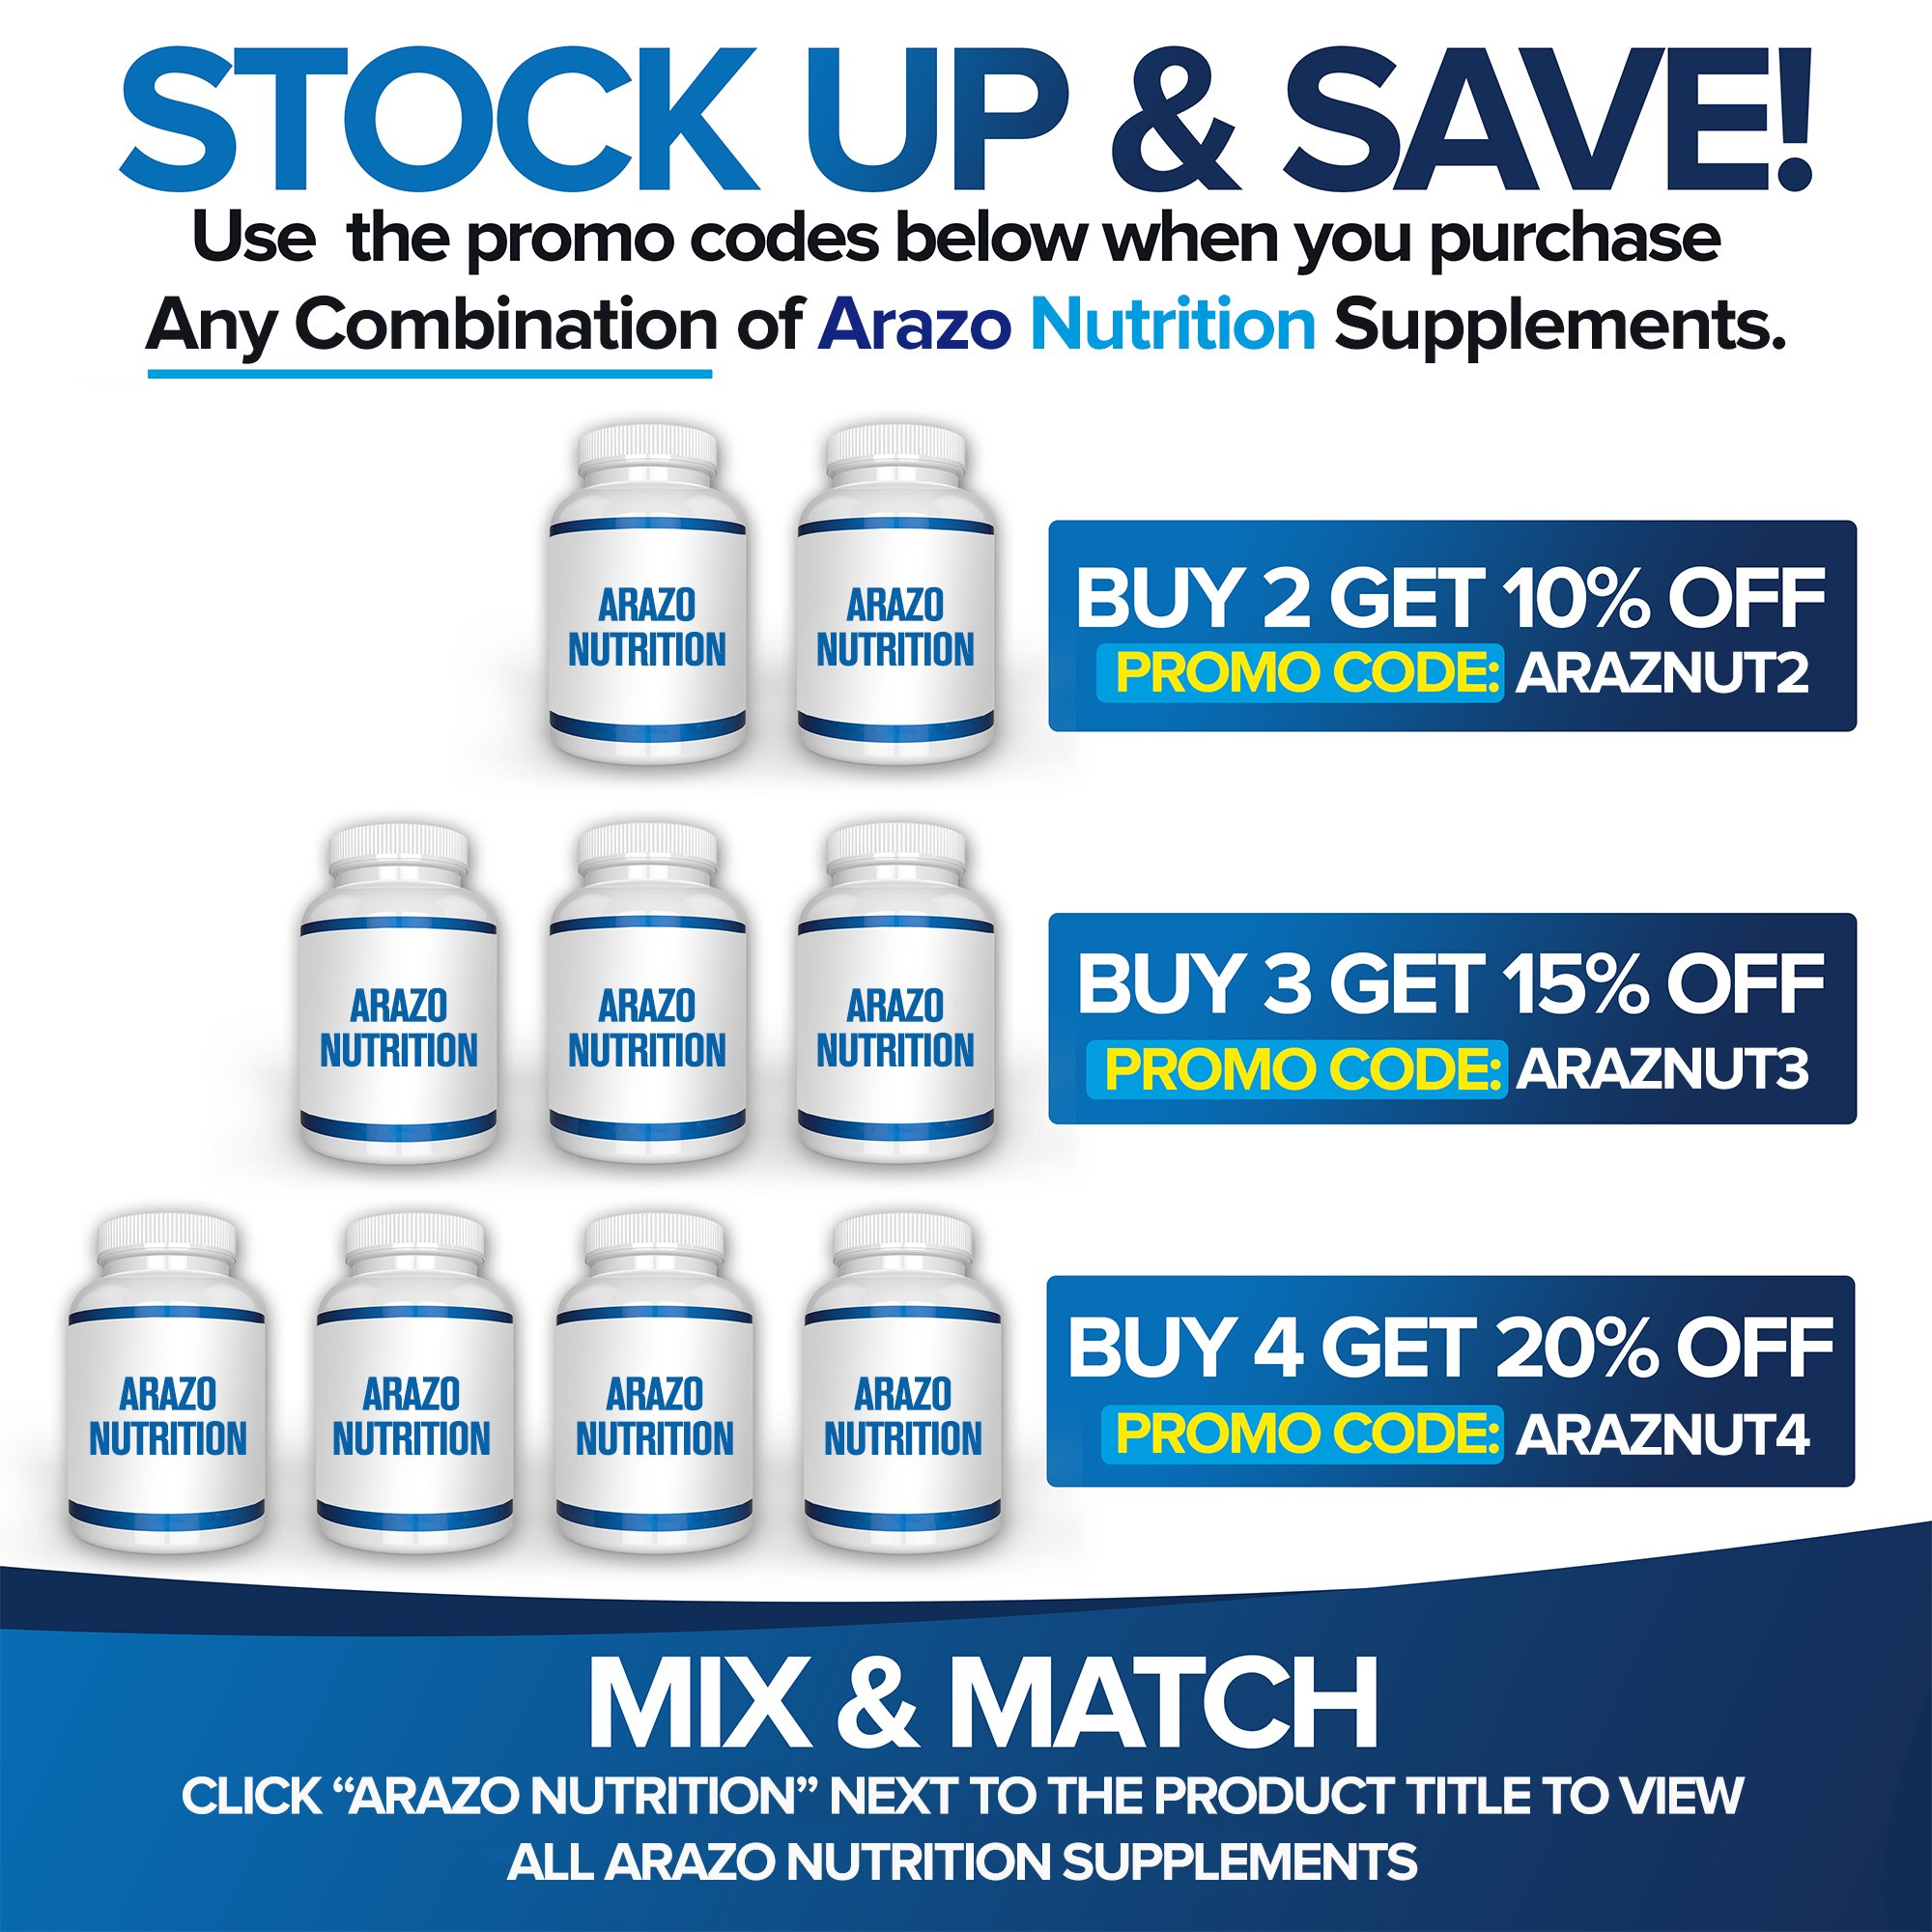 5-HTP 200 mg Supplement - 120 Capsules - Arazo Nutrition by Arazo Nutrition (Image #7)